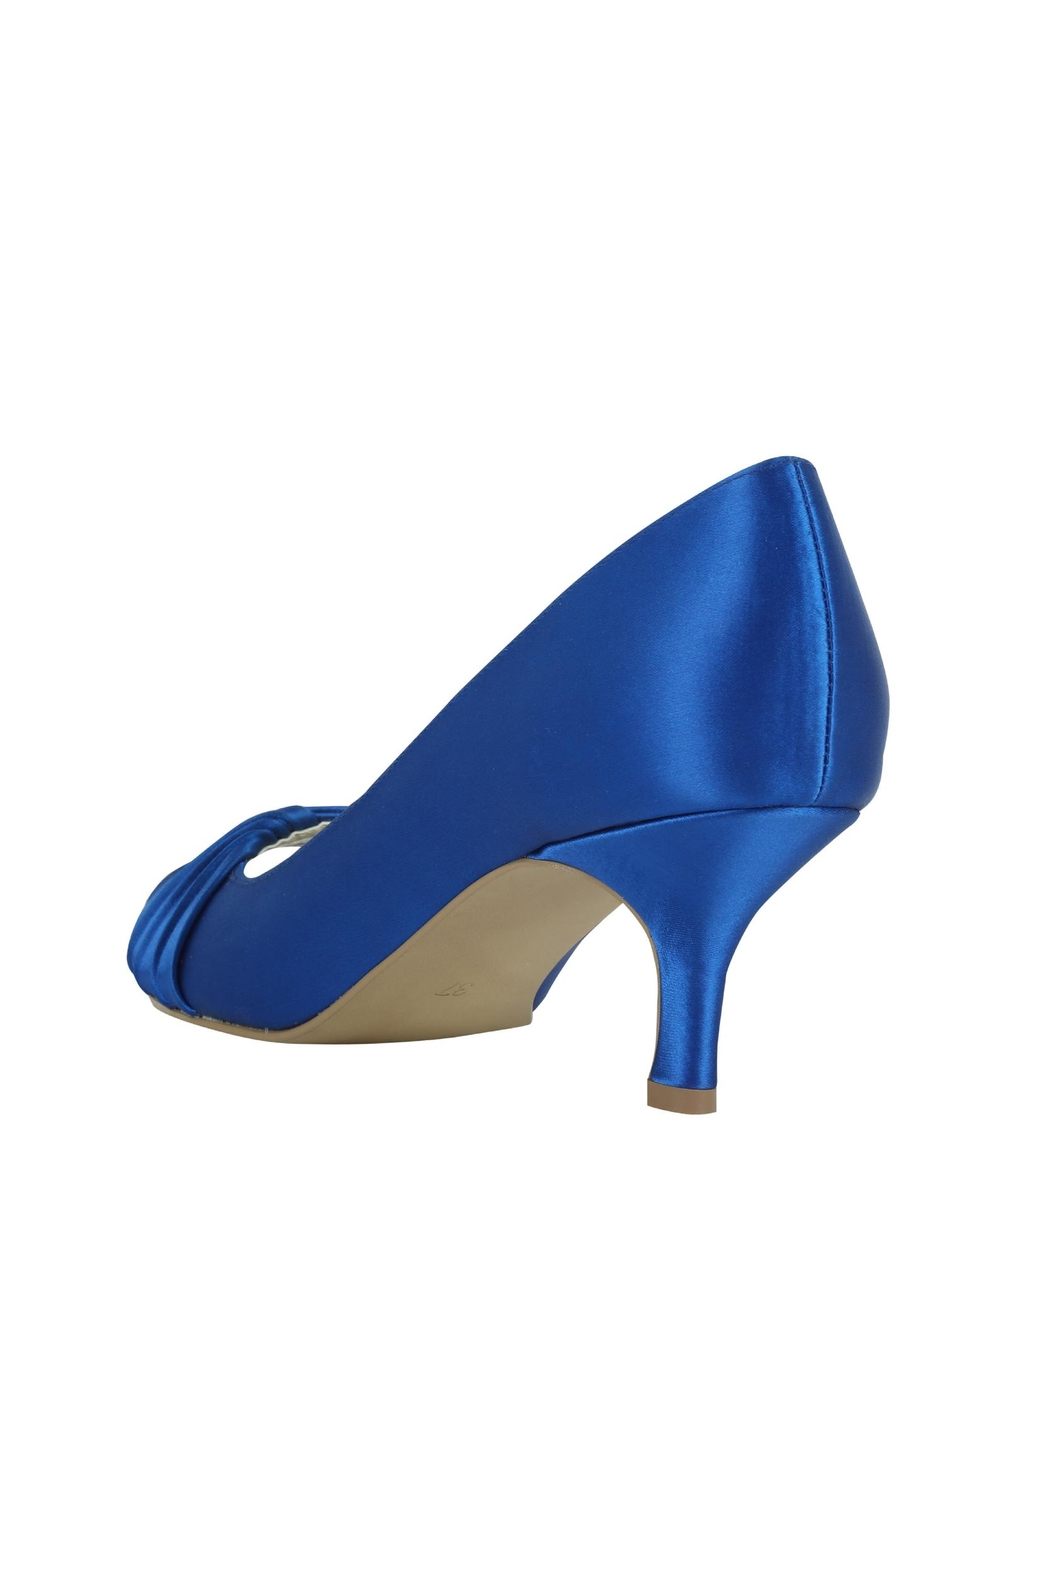 pink paradox London Romantic Blue Satin Heel - Side Cropped Image